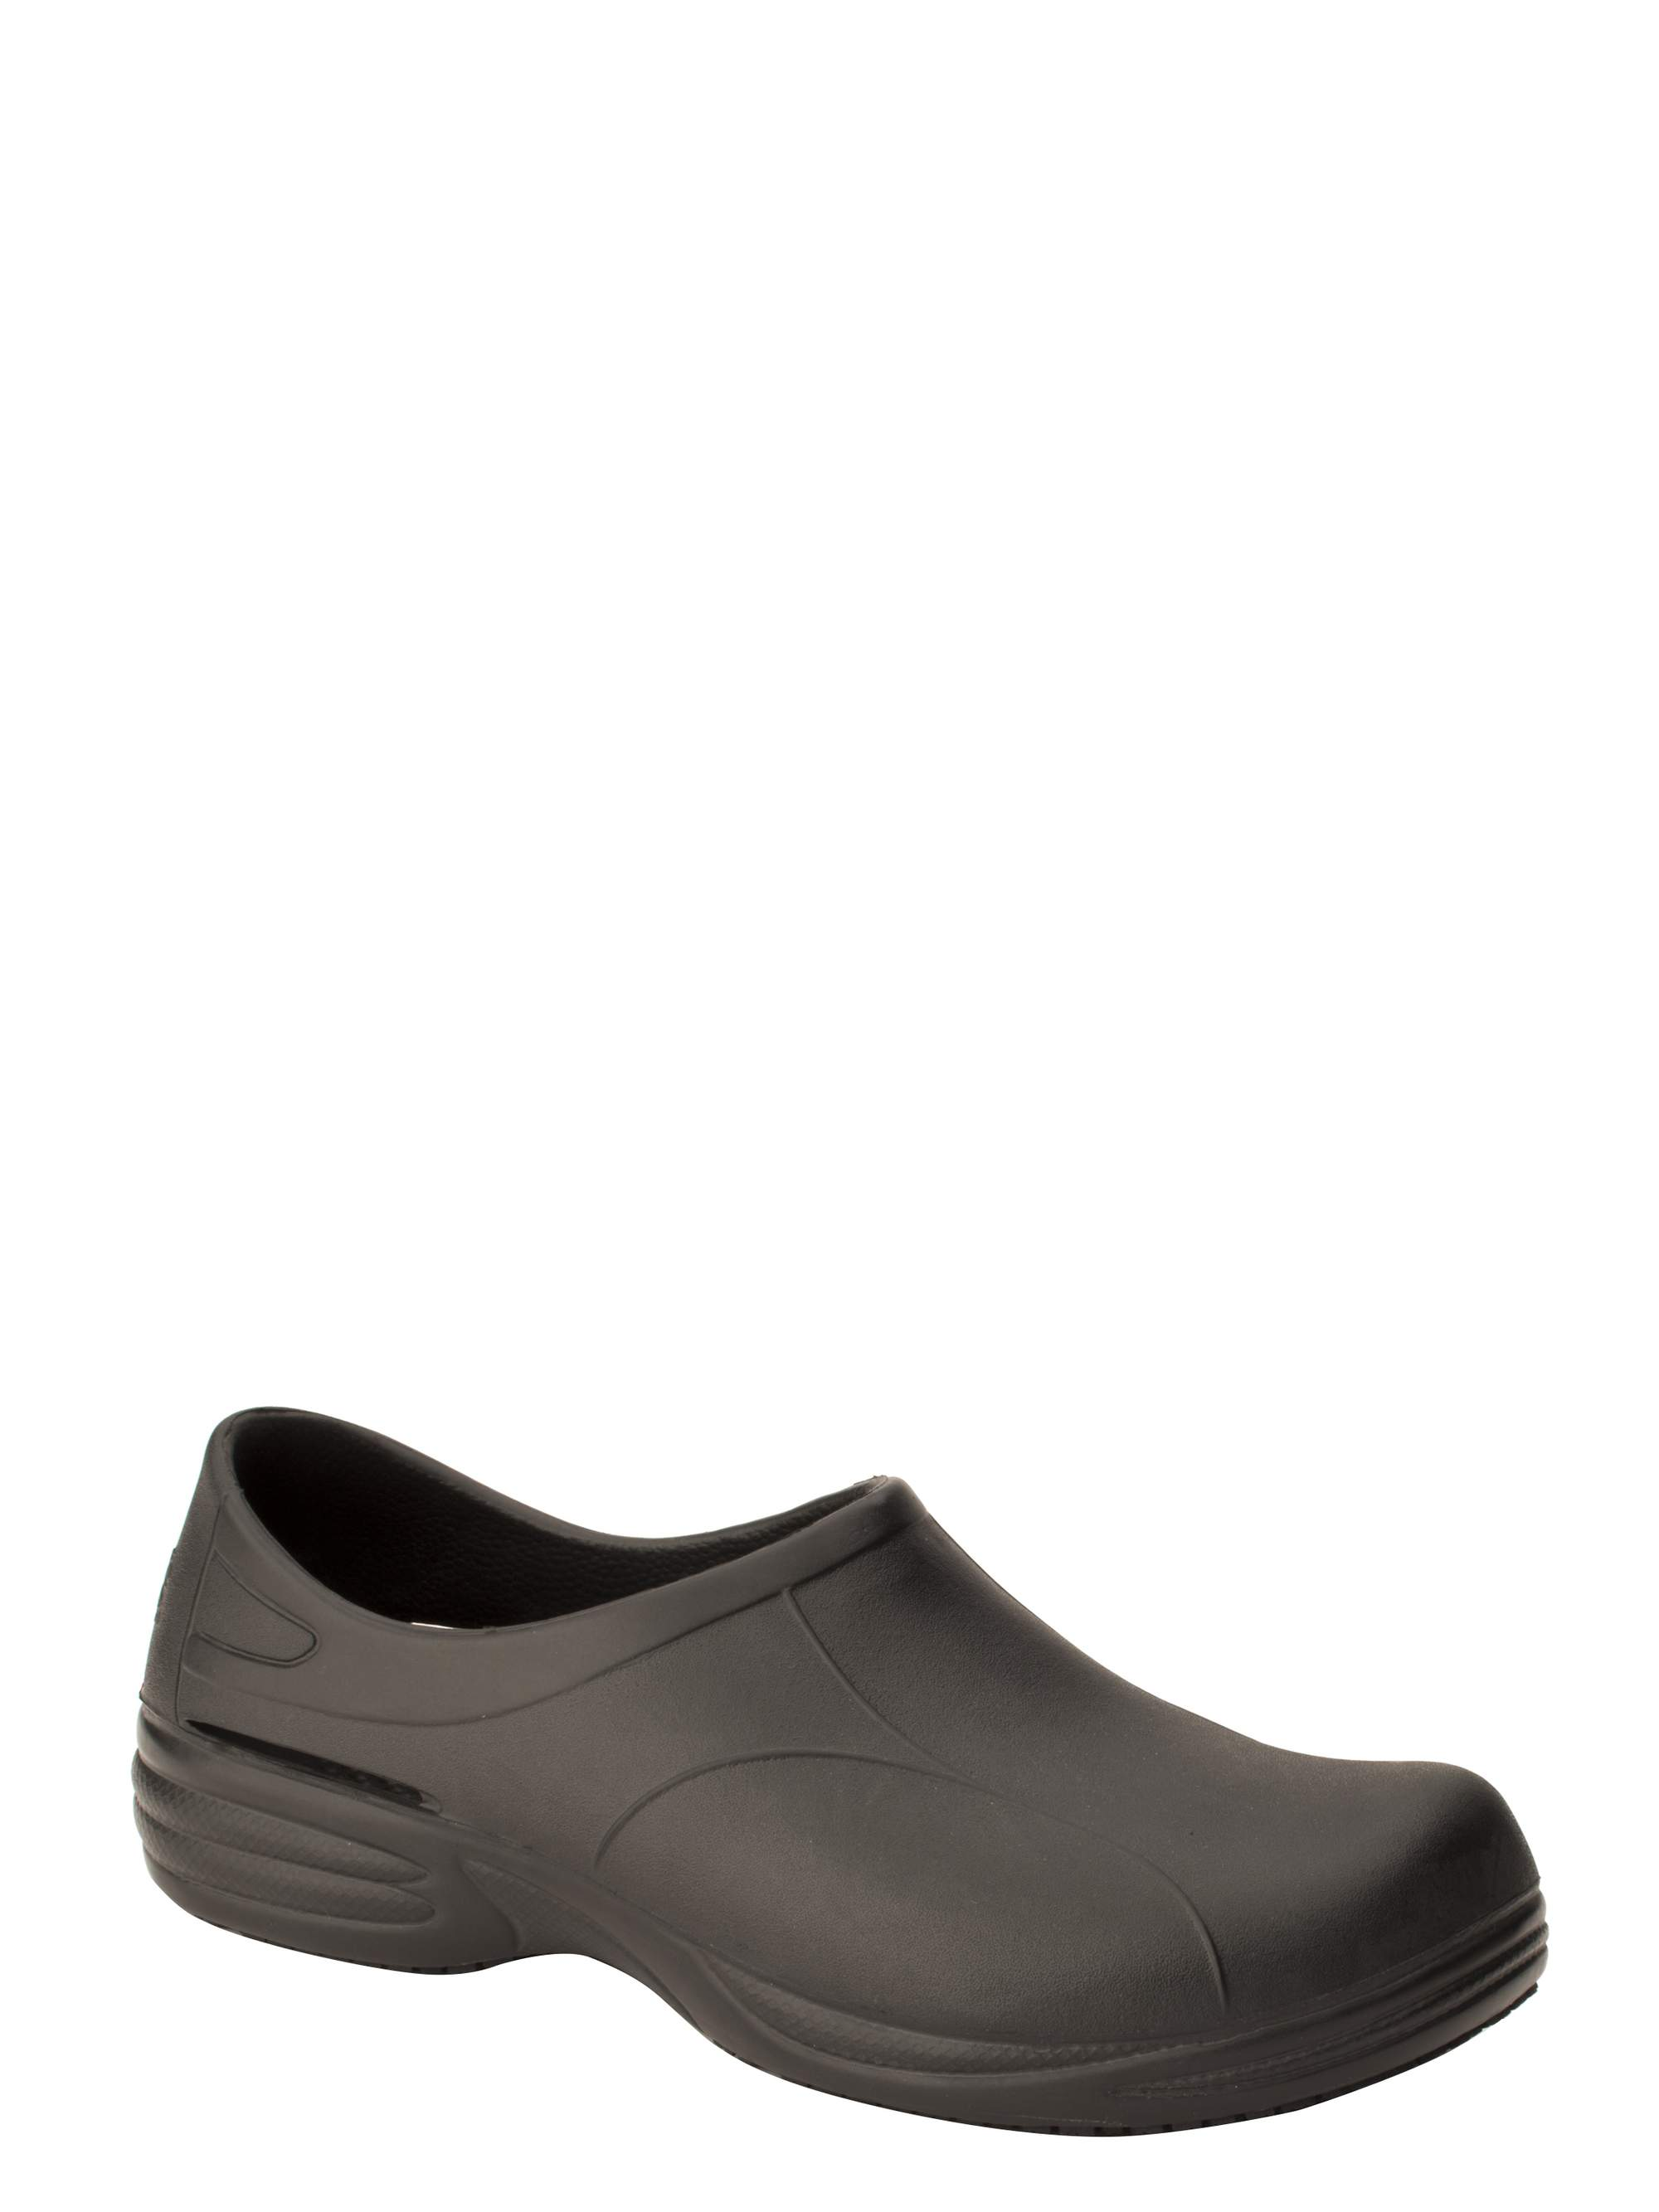 Click here to buy Tredsafe Unisex Pepper Slip-Resistant Clog by HYI.